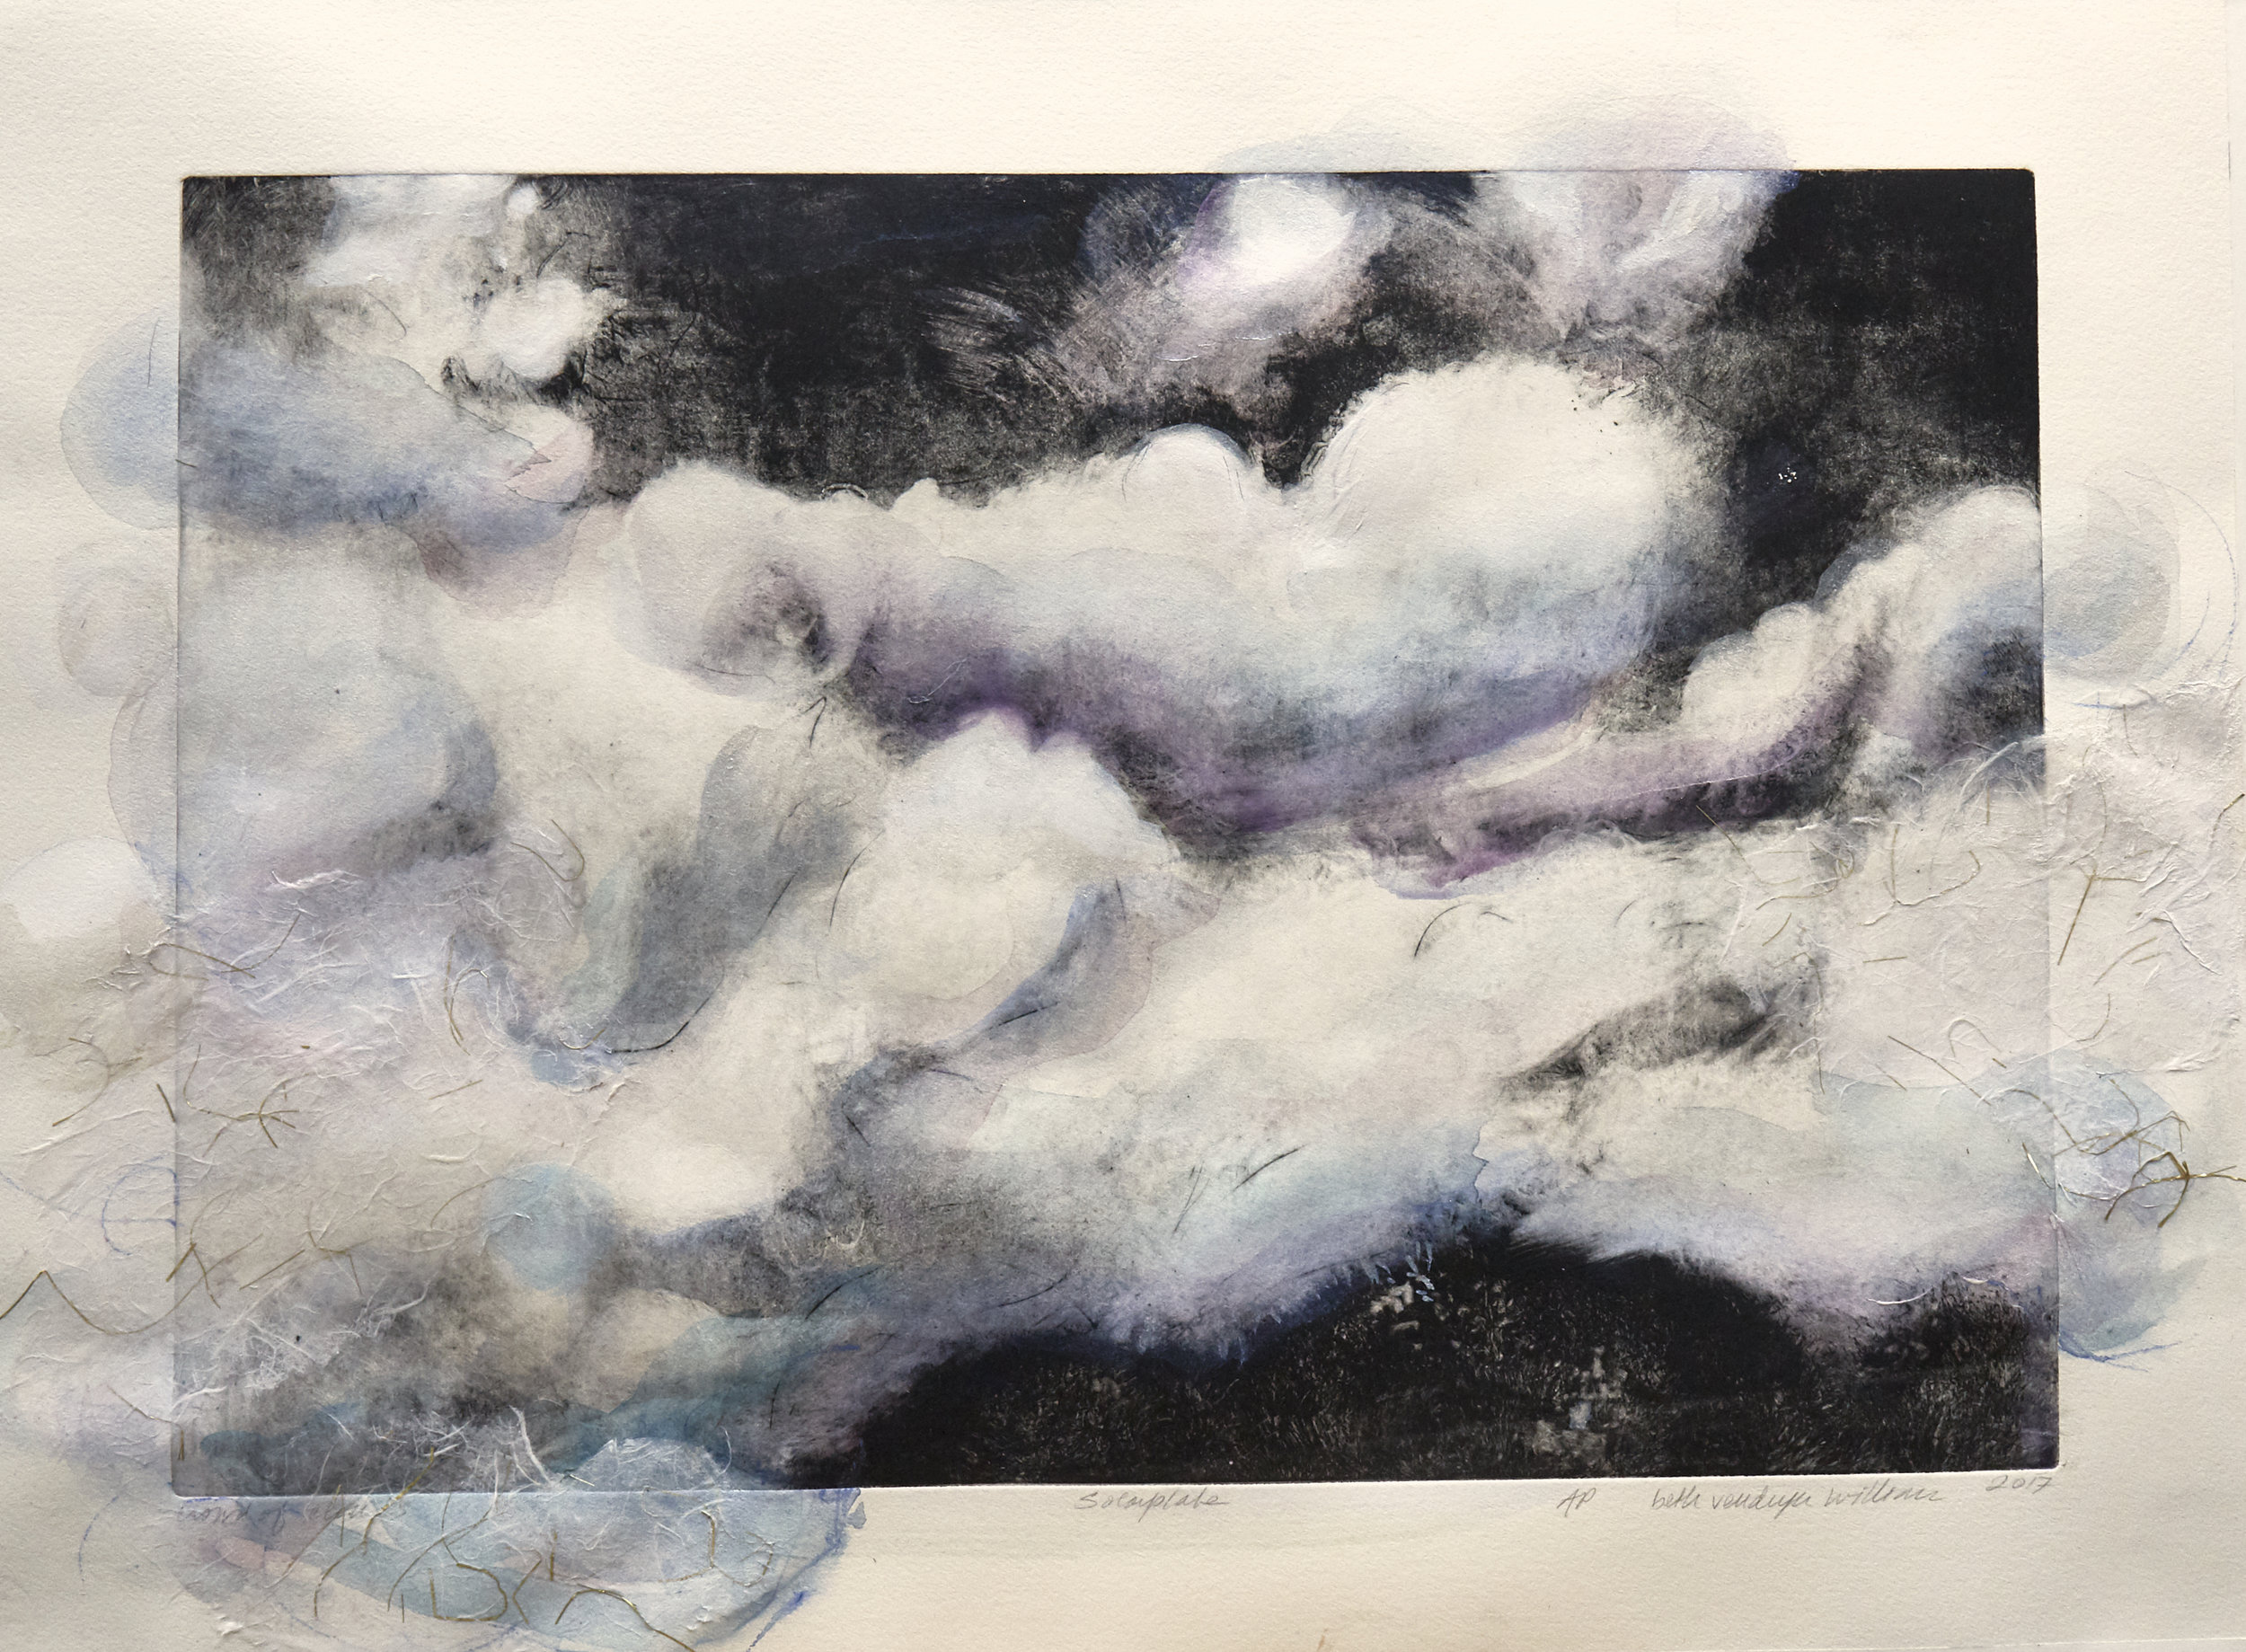 "let the clouds in  953 Solarplate etching, 22' x 30"" beth vendryes williams"